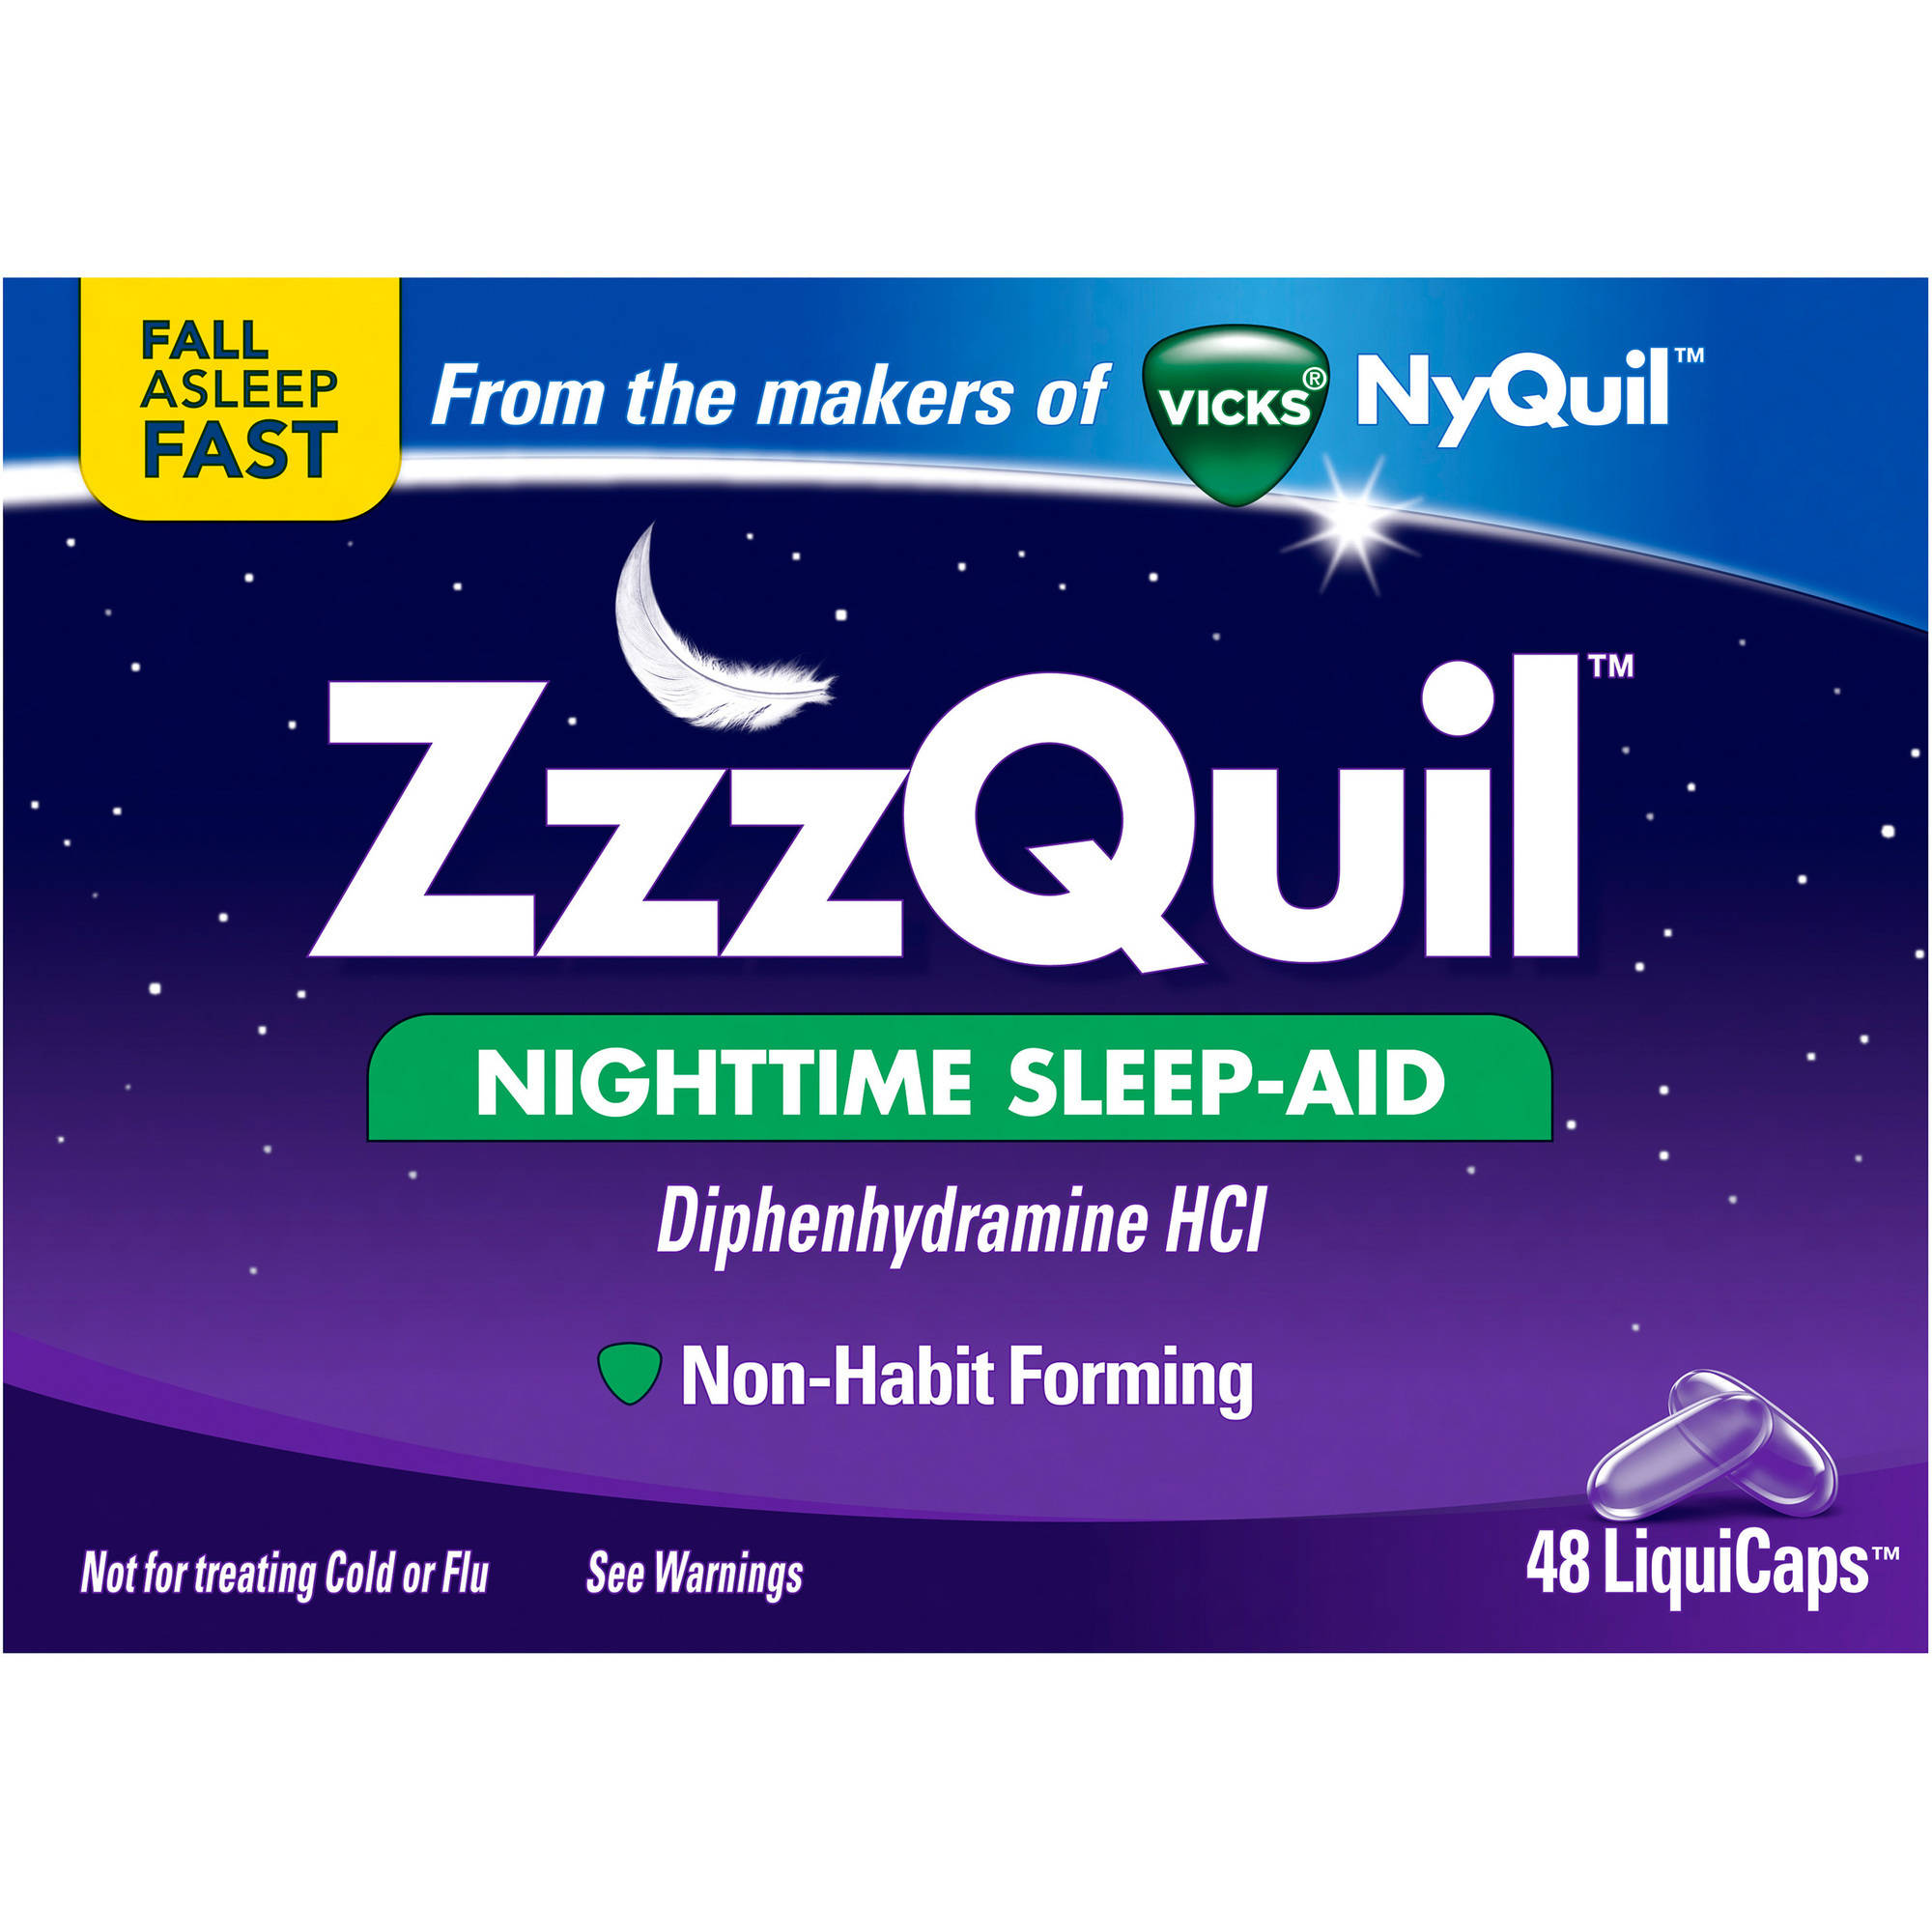 ZzzQuil Nighttime Sleep-Aid LiquiCaps, 48 count